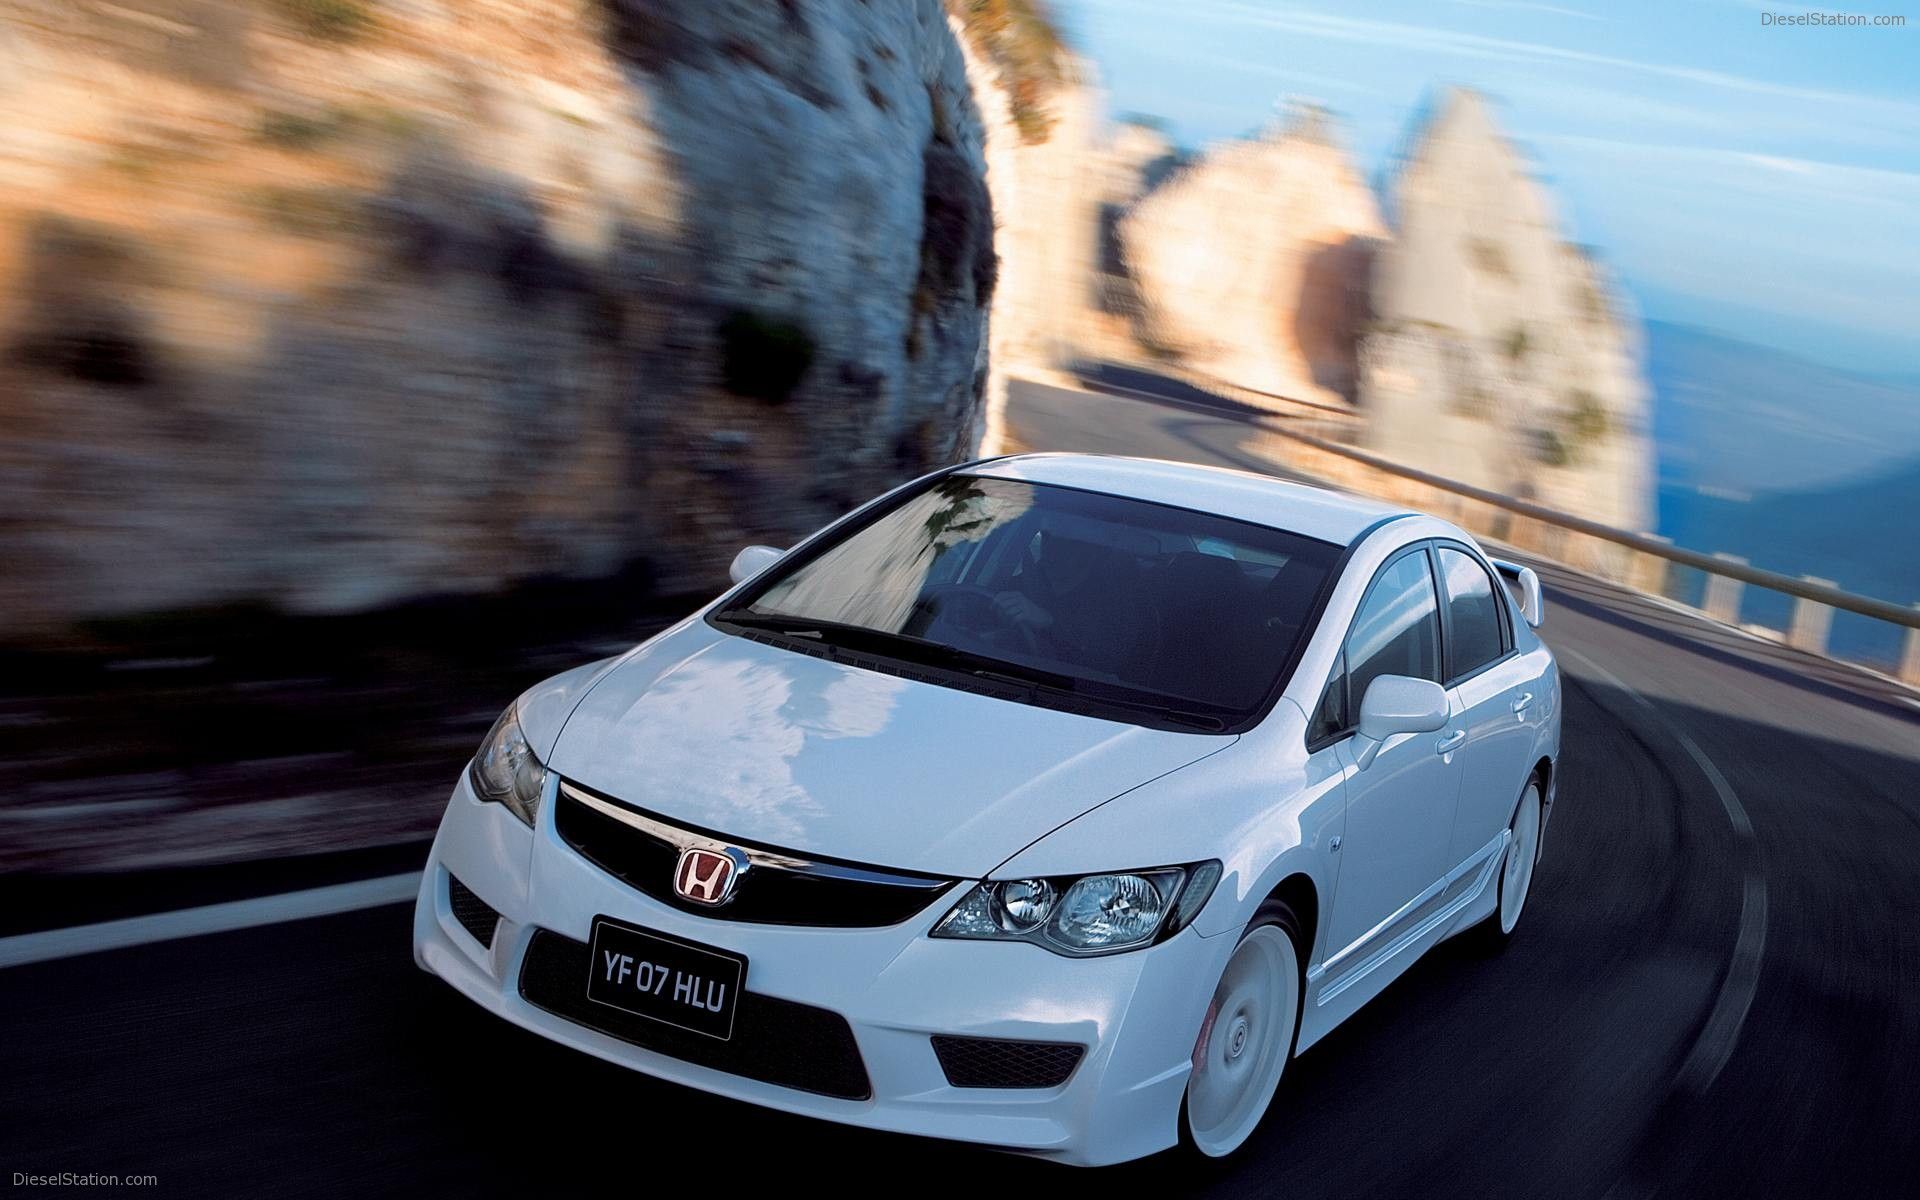 Honda Civic Wallpaper Size